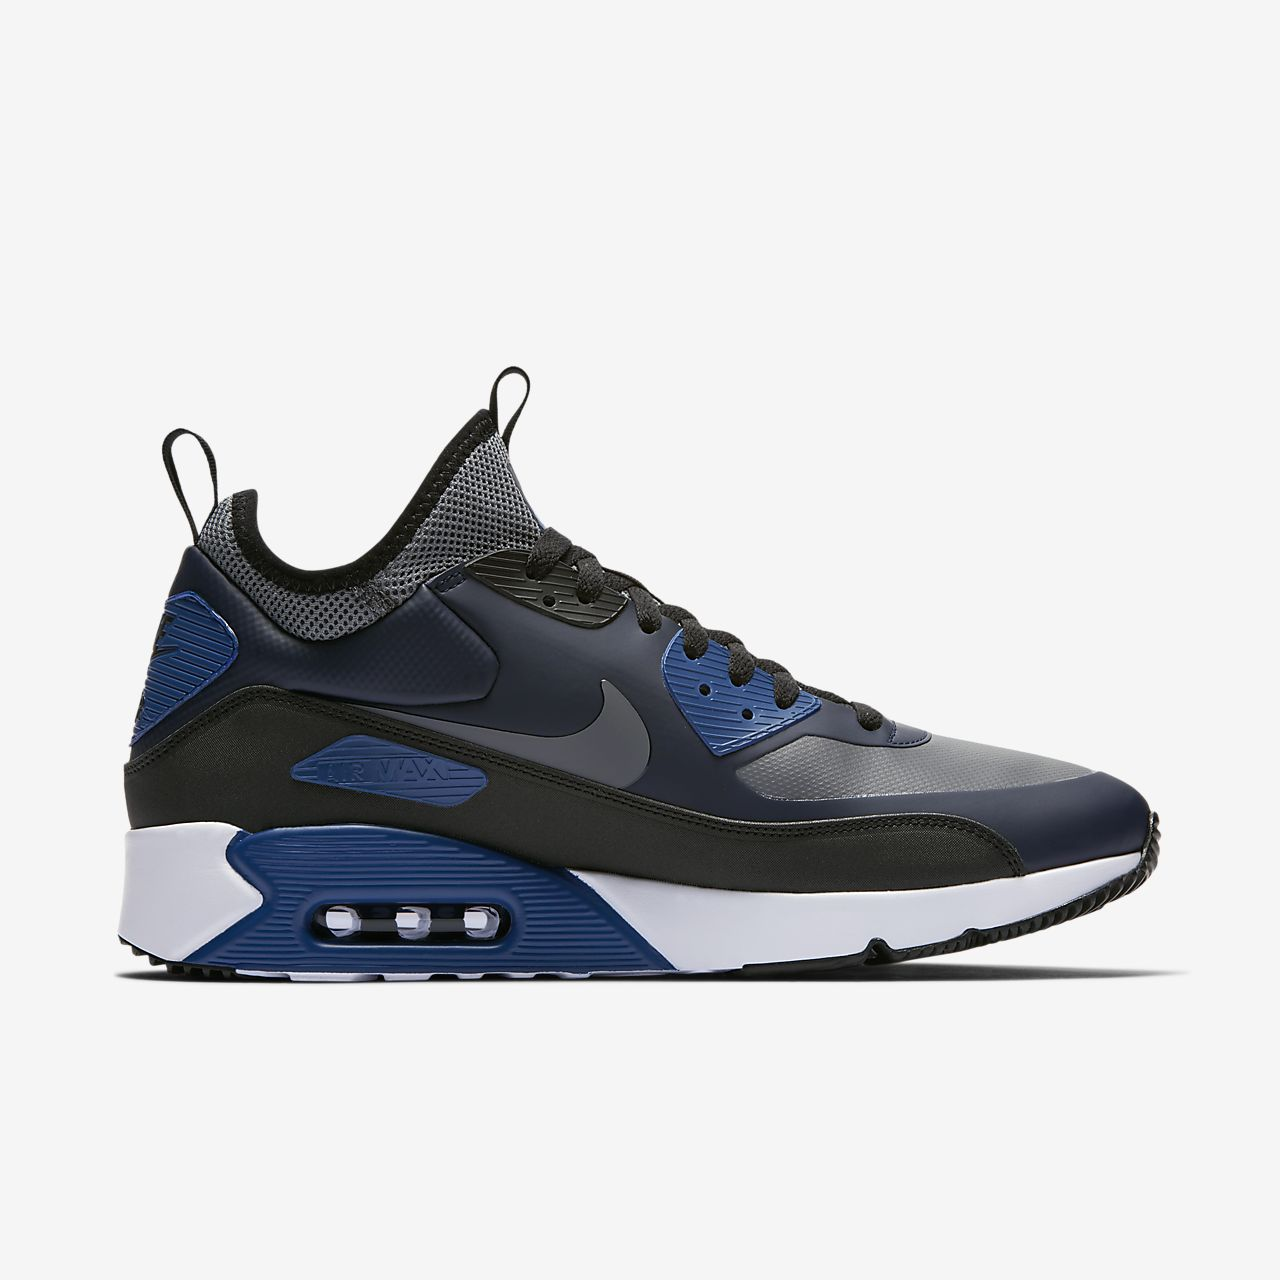 nike air max 90 ultra mid winter men's shoe